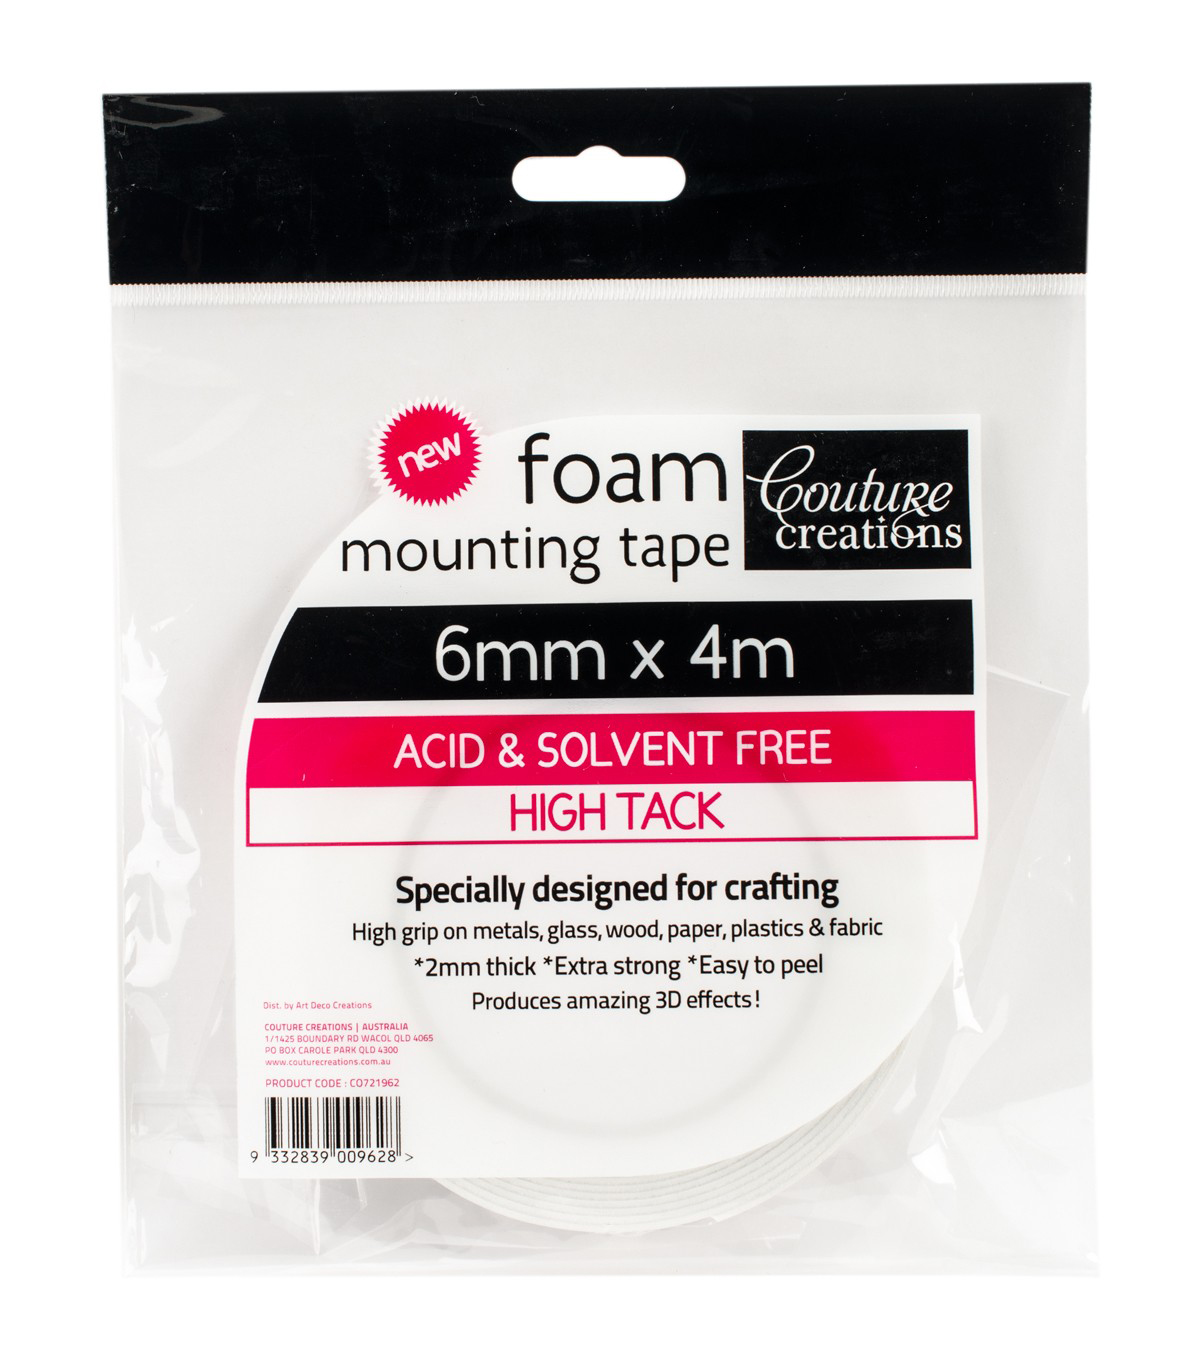 Couture Creations Foam Mounting Tape 6mmX4m-High Tack